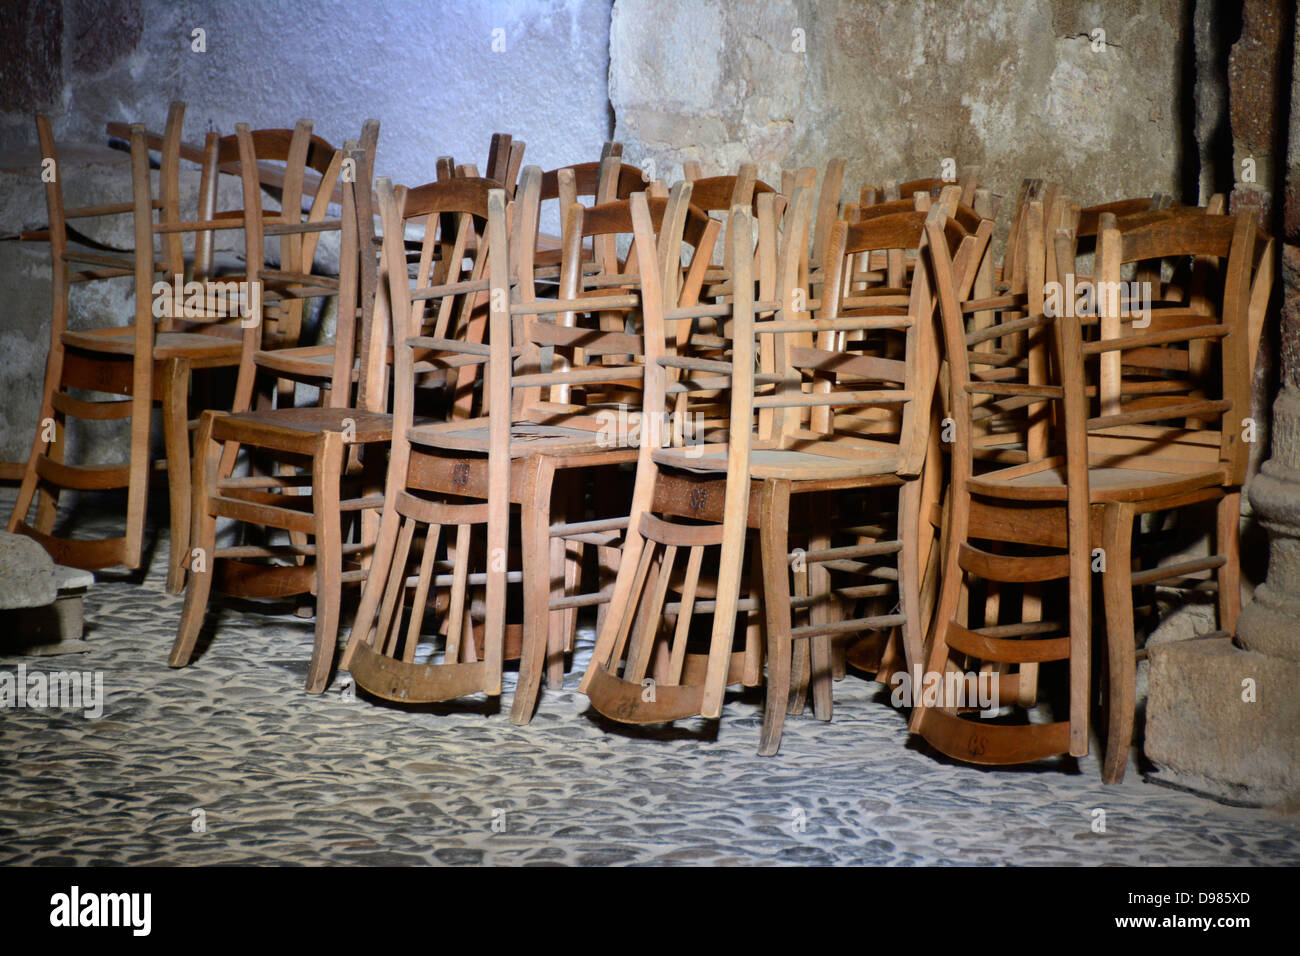 Wooden chairs in a church. - Stock Image